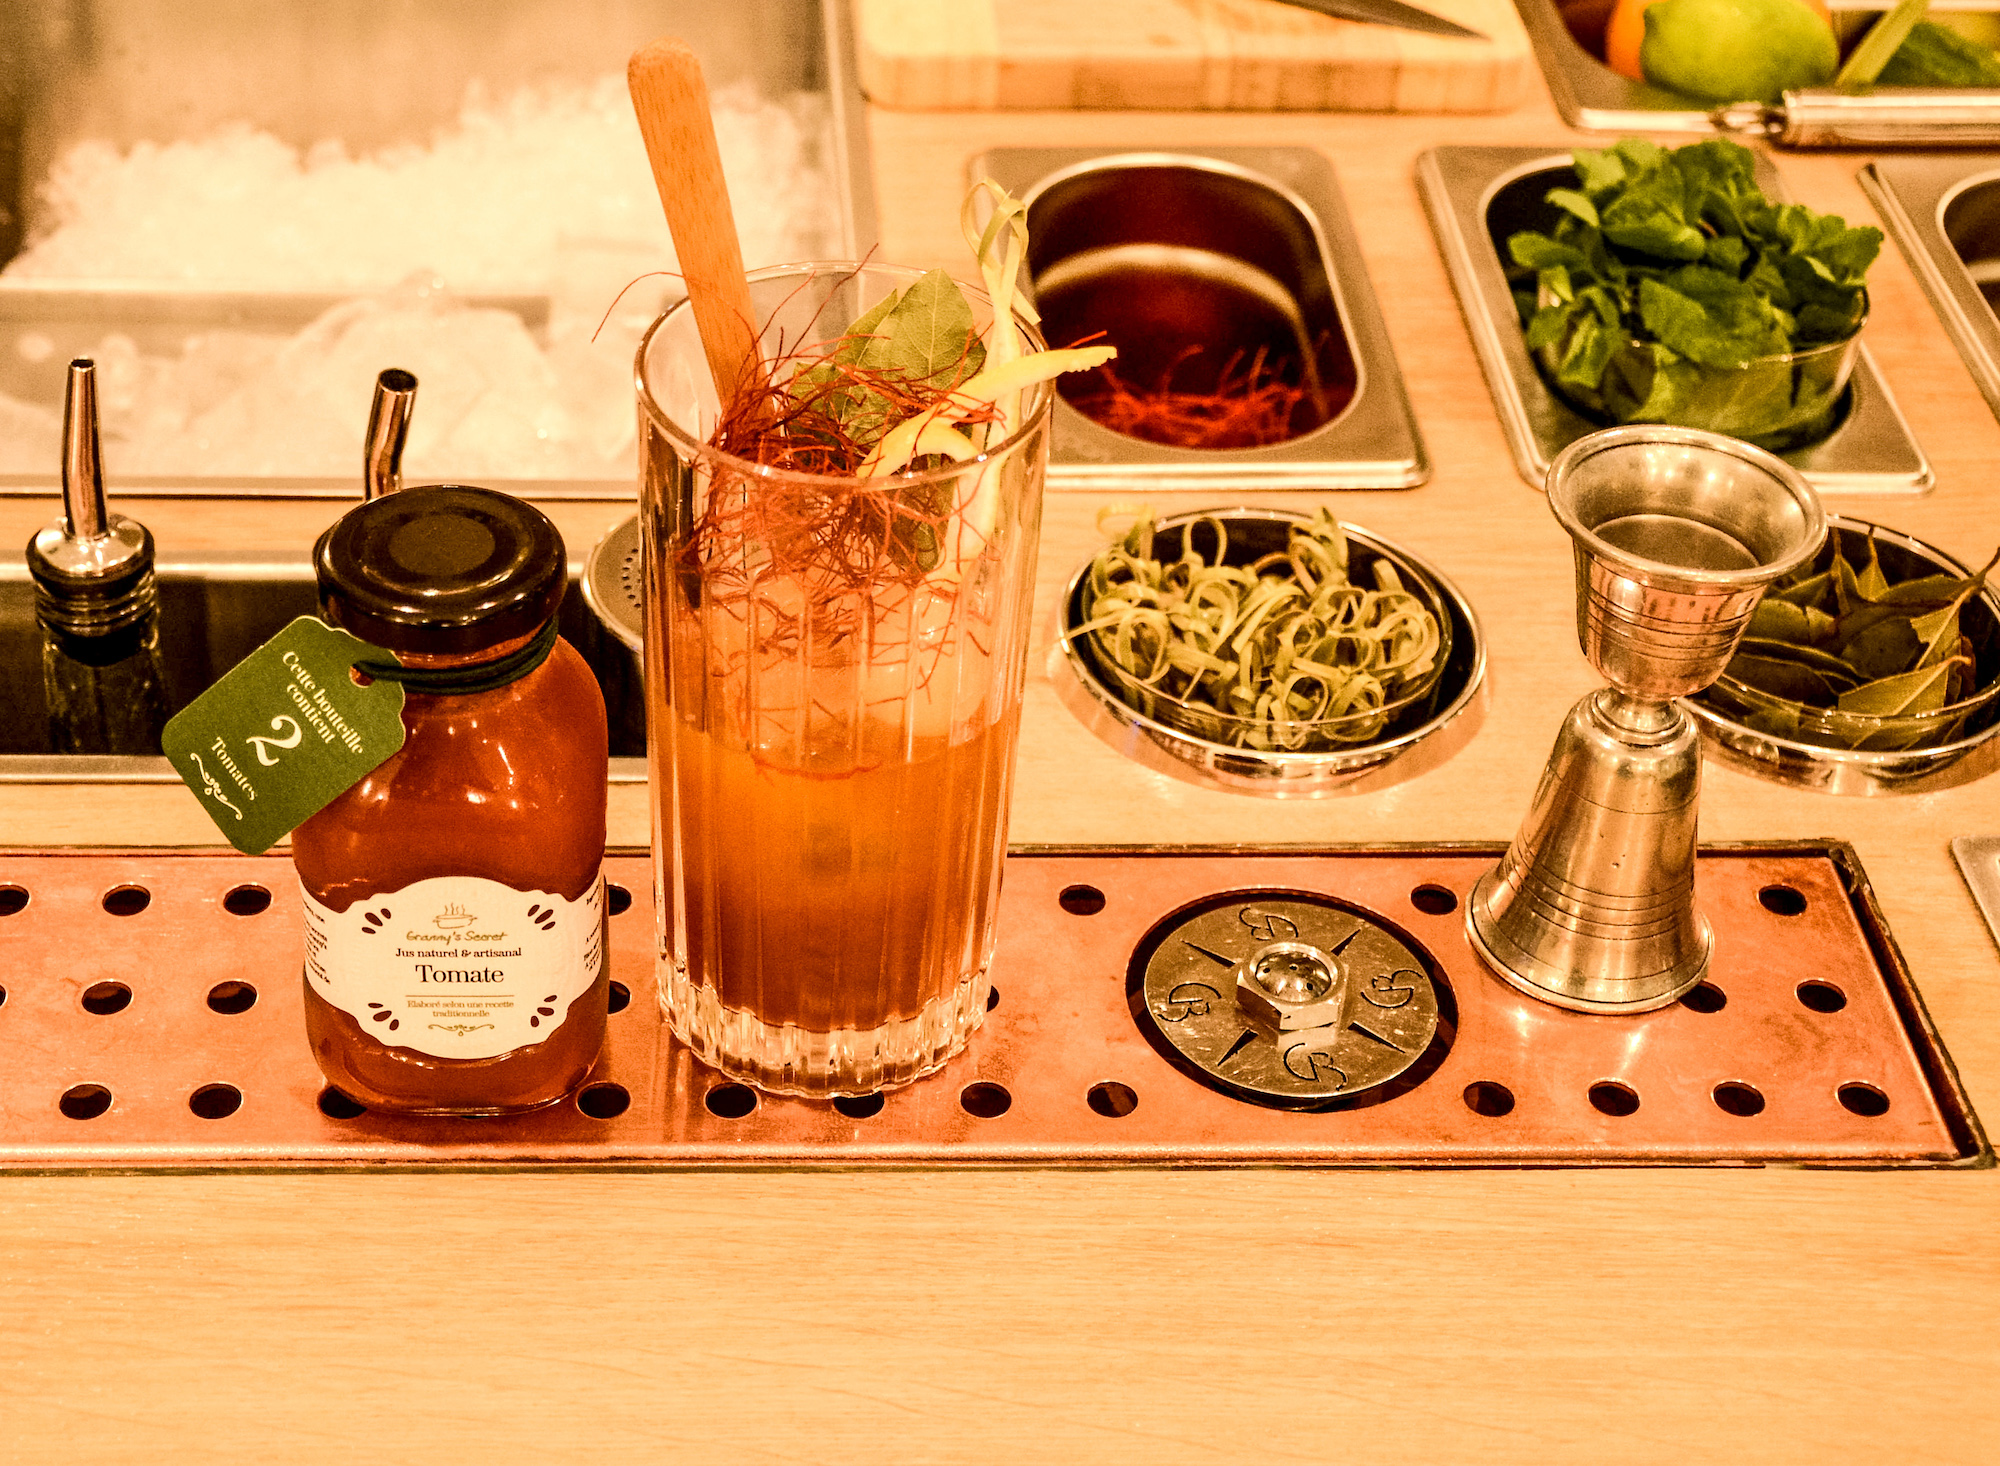 HiP Paris blog. Endless summer at Copper Bay Cocktail Bar in the 10th arrondissement. Pastis and fresh ingredients are reminiscent of warm days in southern France.